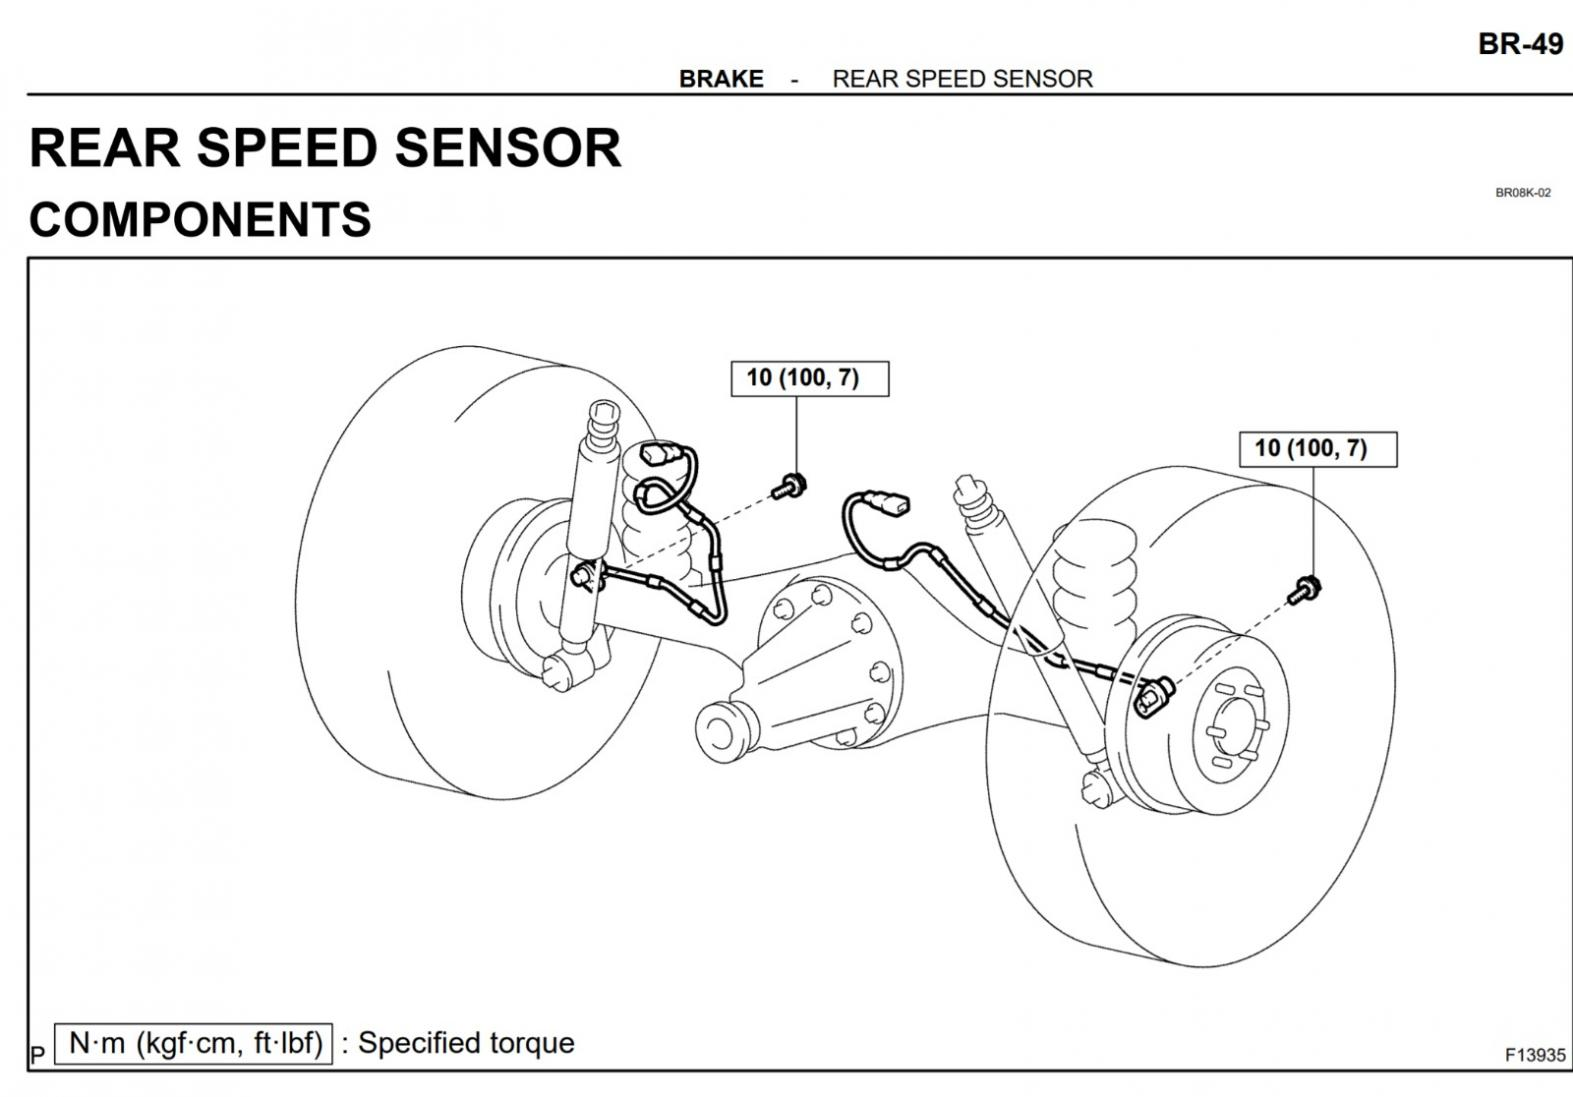 2002 ABS Wheel speed sensor location and replacement-whatsapp-image-2021-09-27-1-56-46-pm-jpg